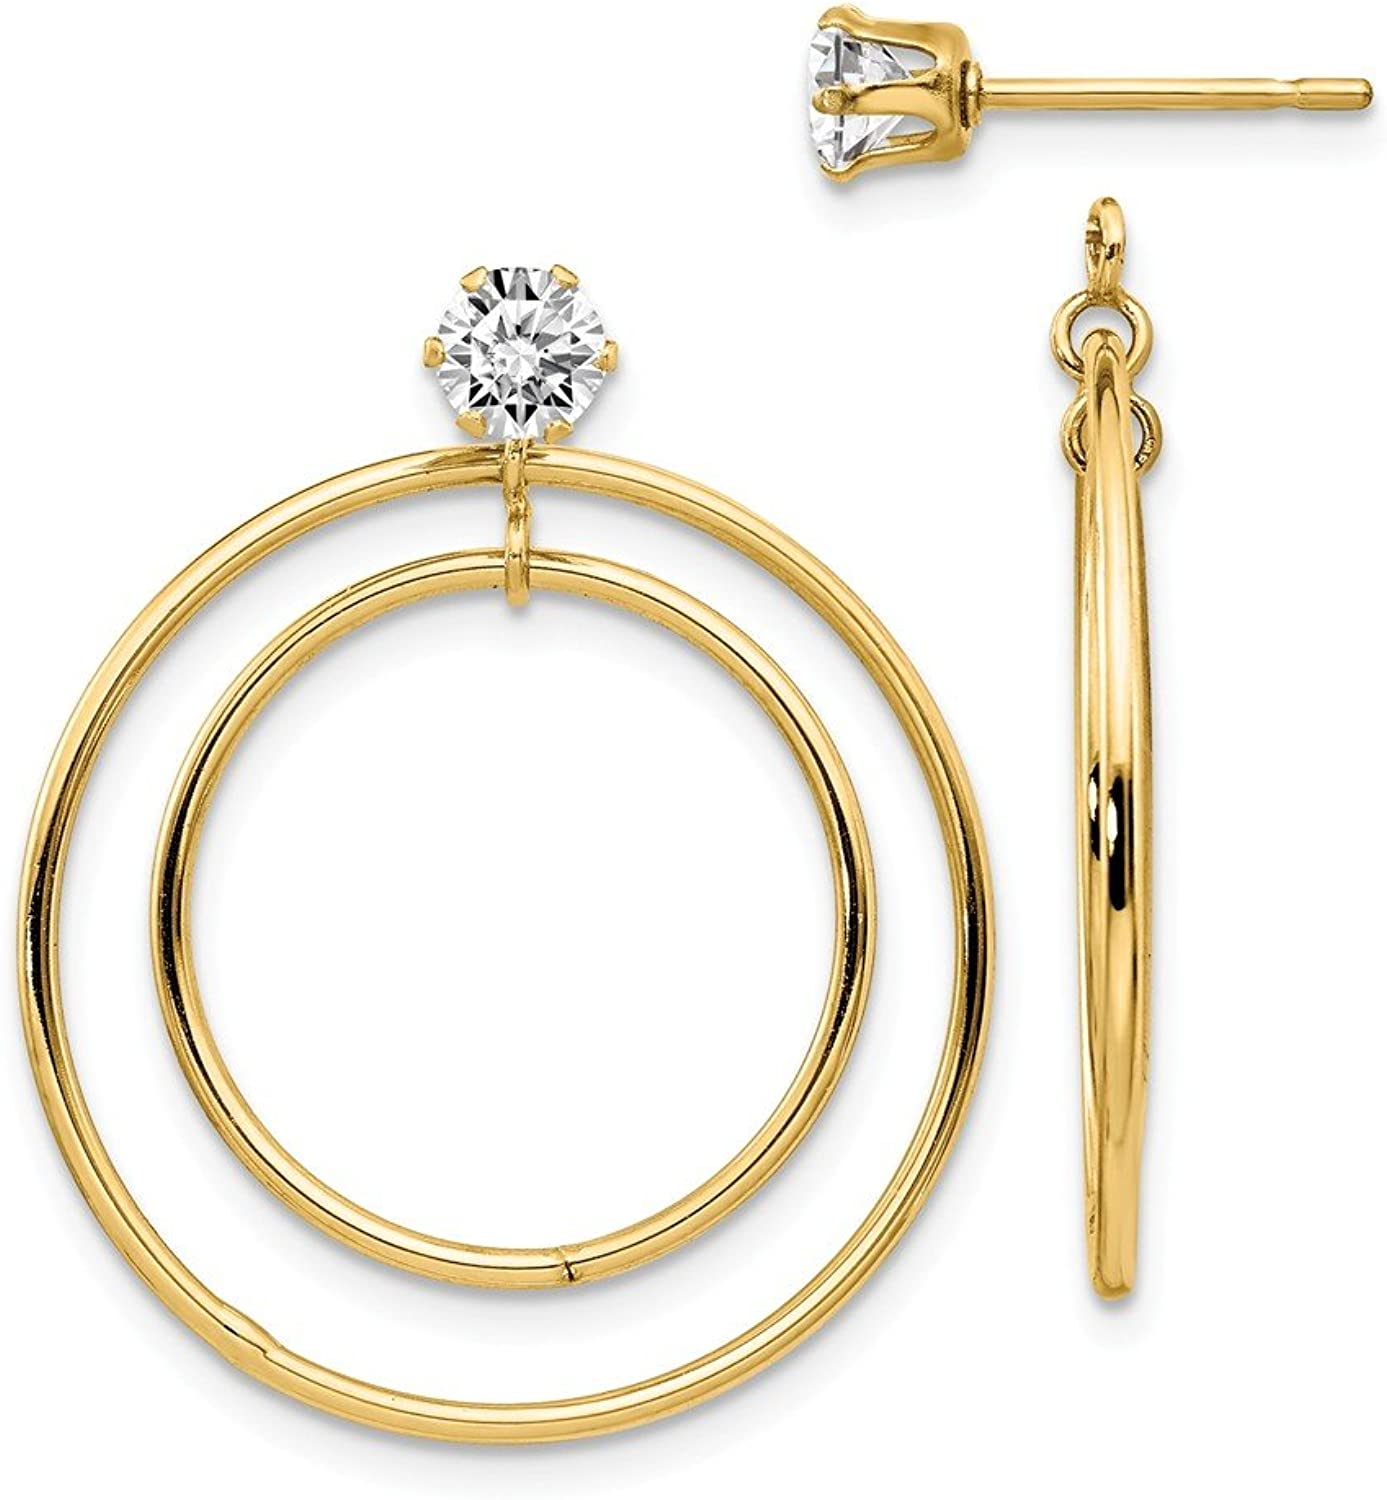 Beautiful Yellow gold 14K Yellowgold 14k Double Hoop with CZ Earring Jackets